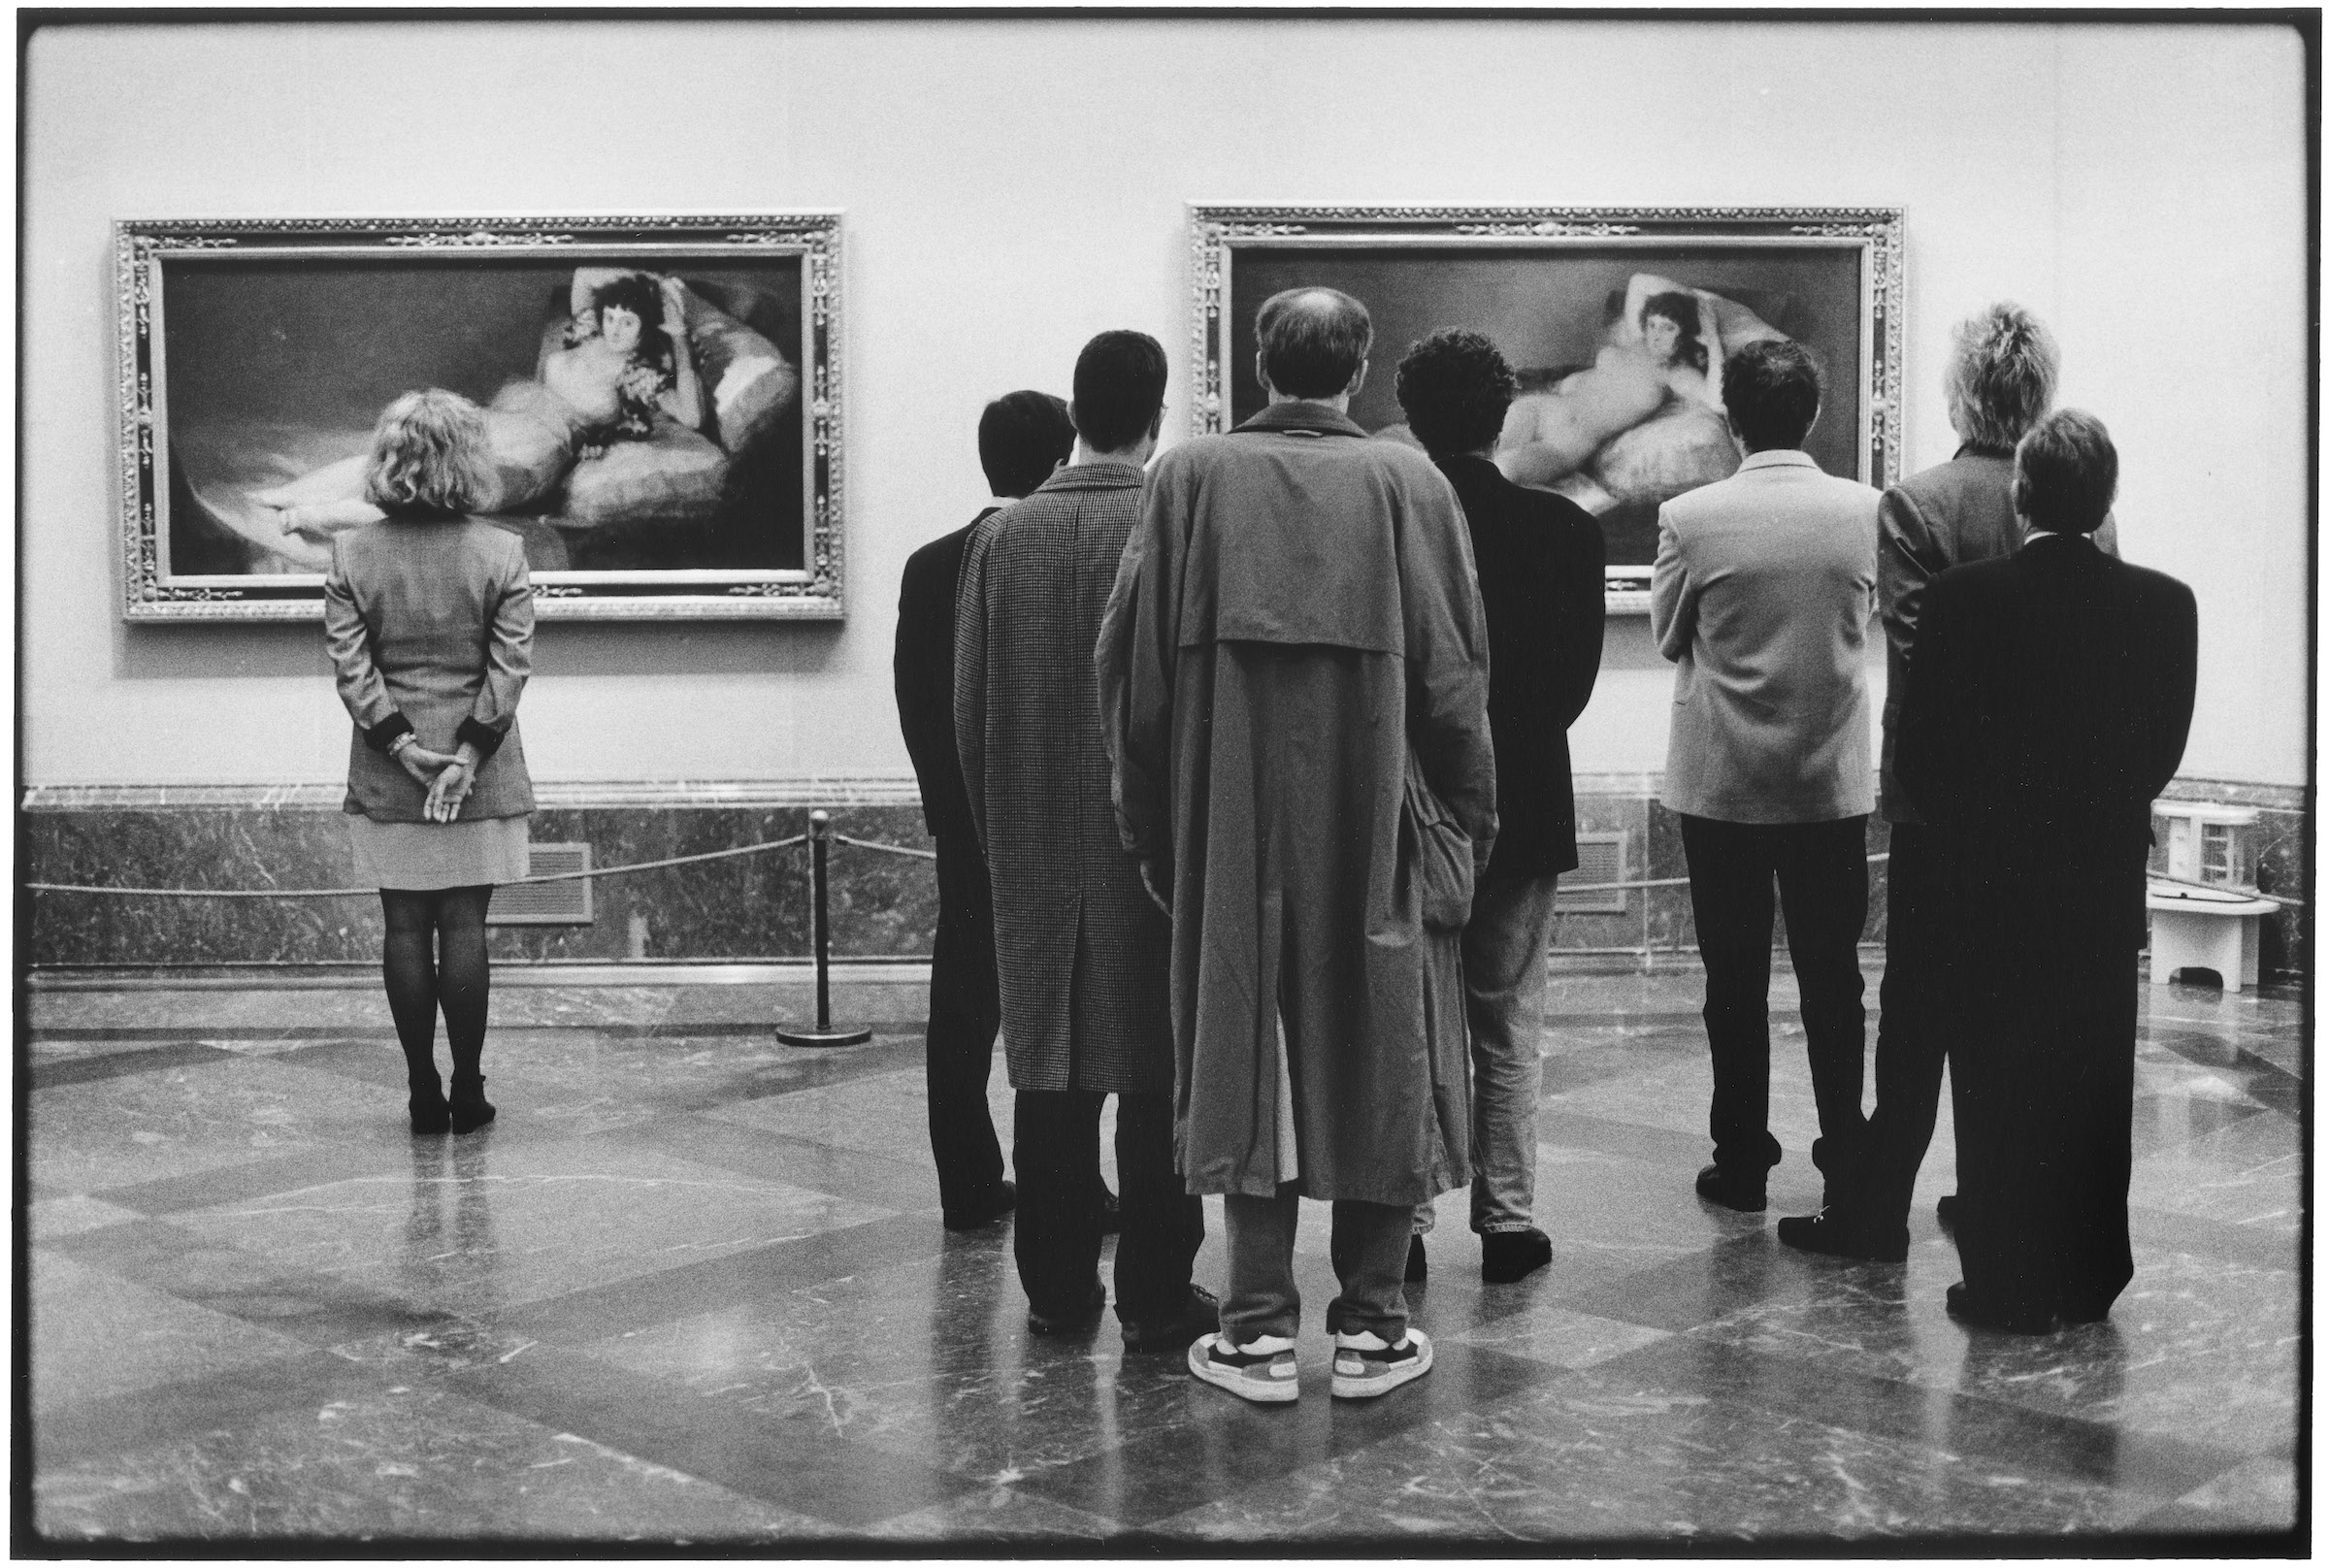 SPAIN. Madrid. 1995. Prado Museum.  © Elliott Erwitt/MAGNUM PHOTOS